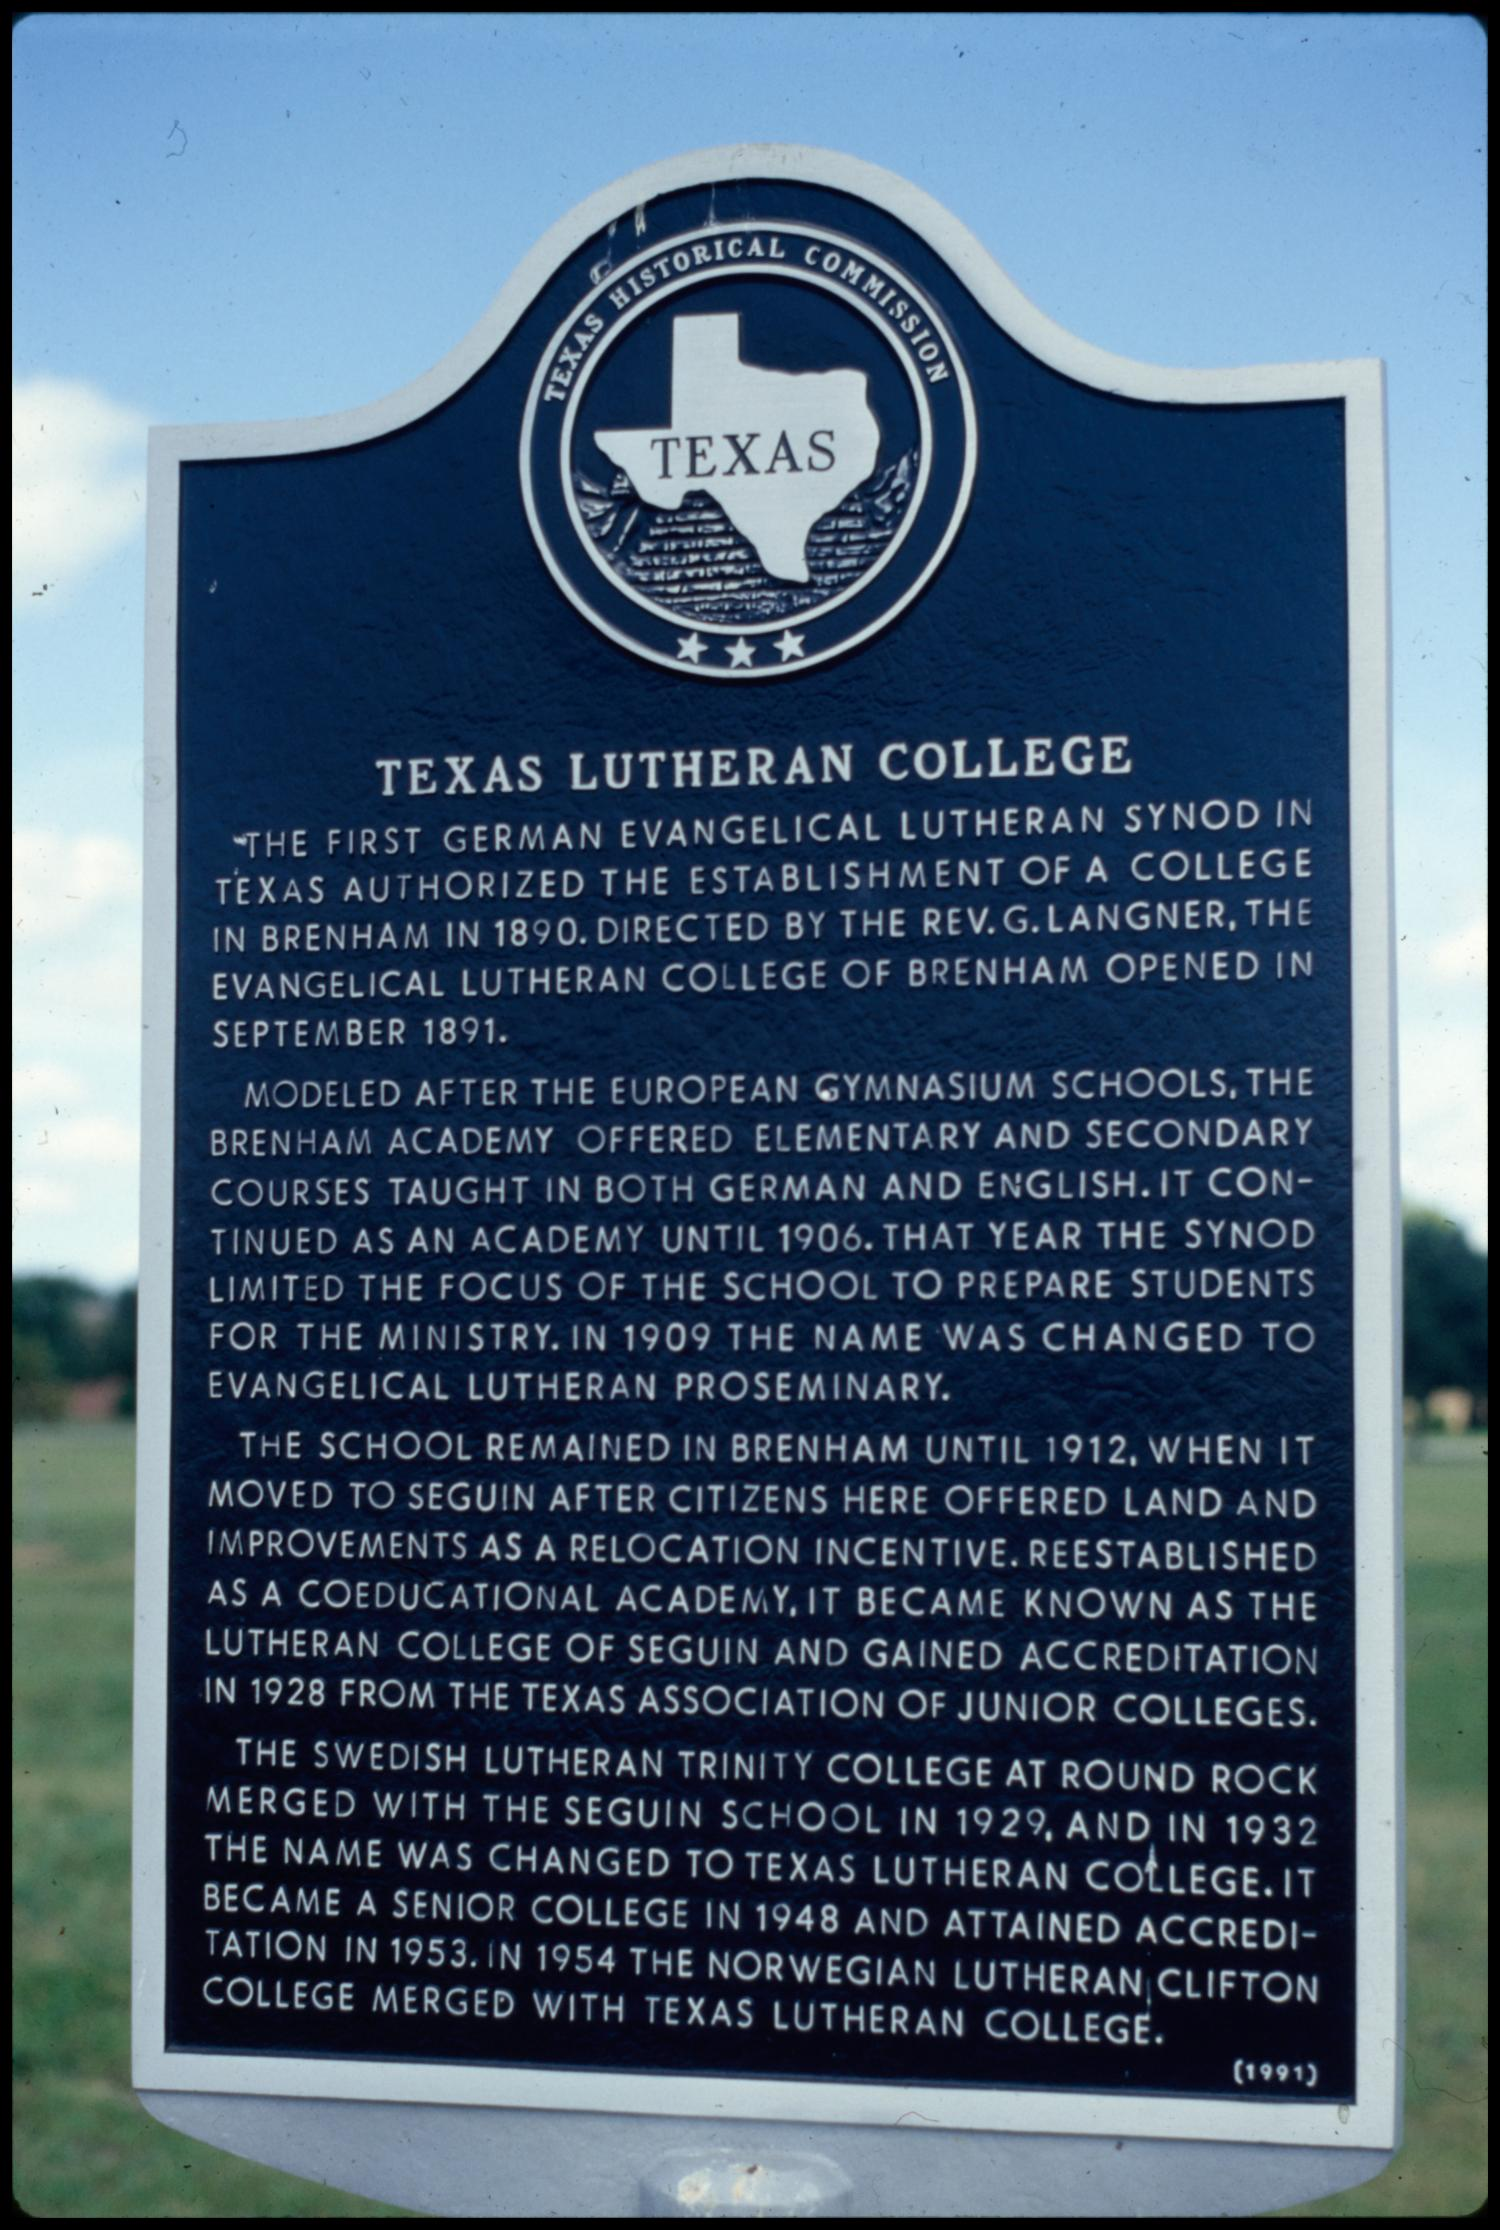 Texas Lutheran College Historic Marker] - The Portal to